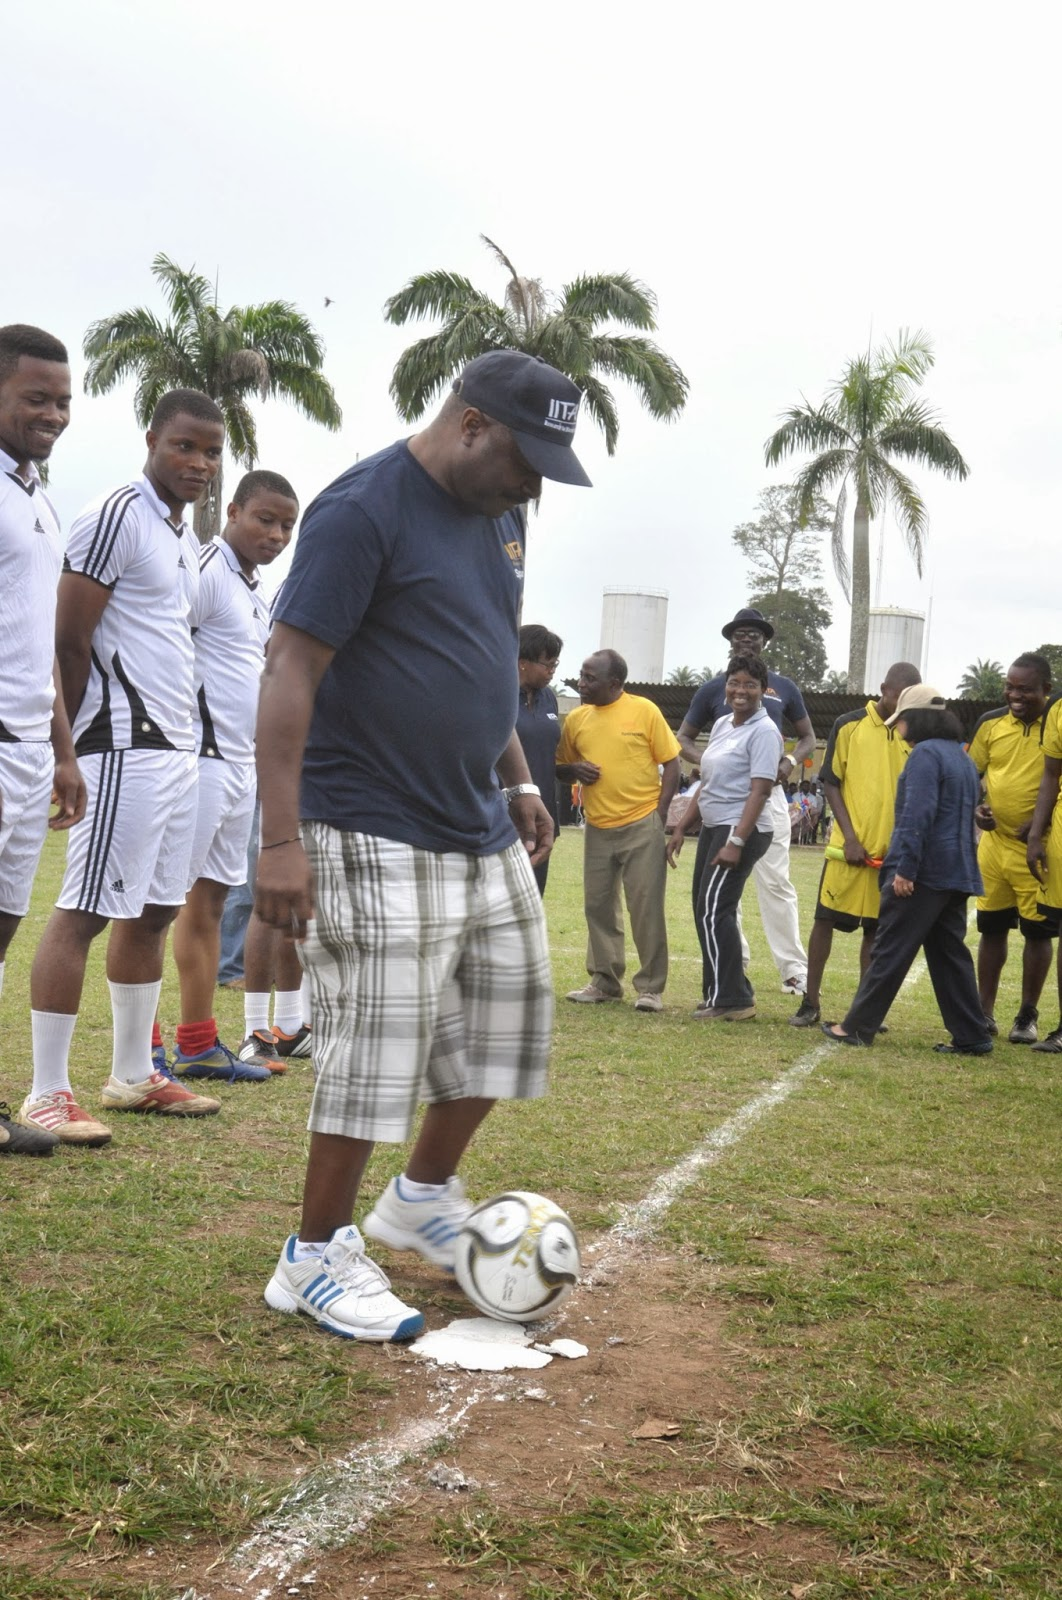 IITA News and Updates: Second edition of the 2013 Sportsfest kicks off